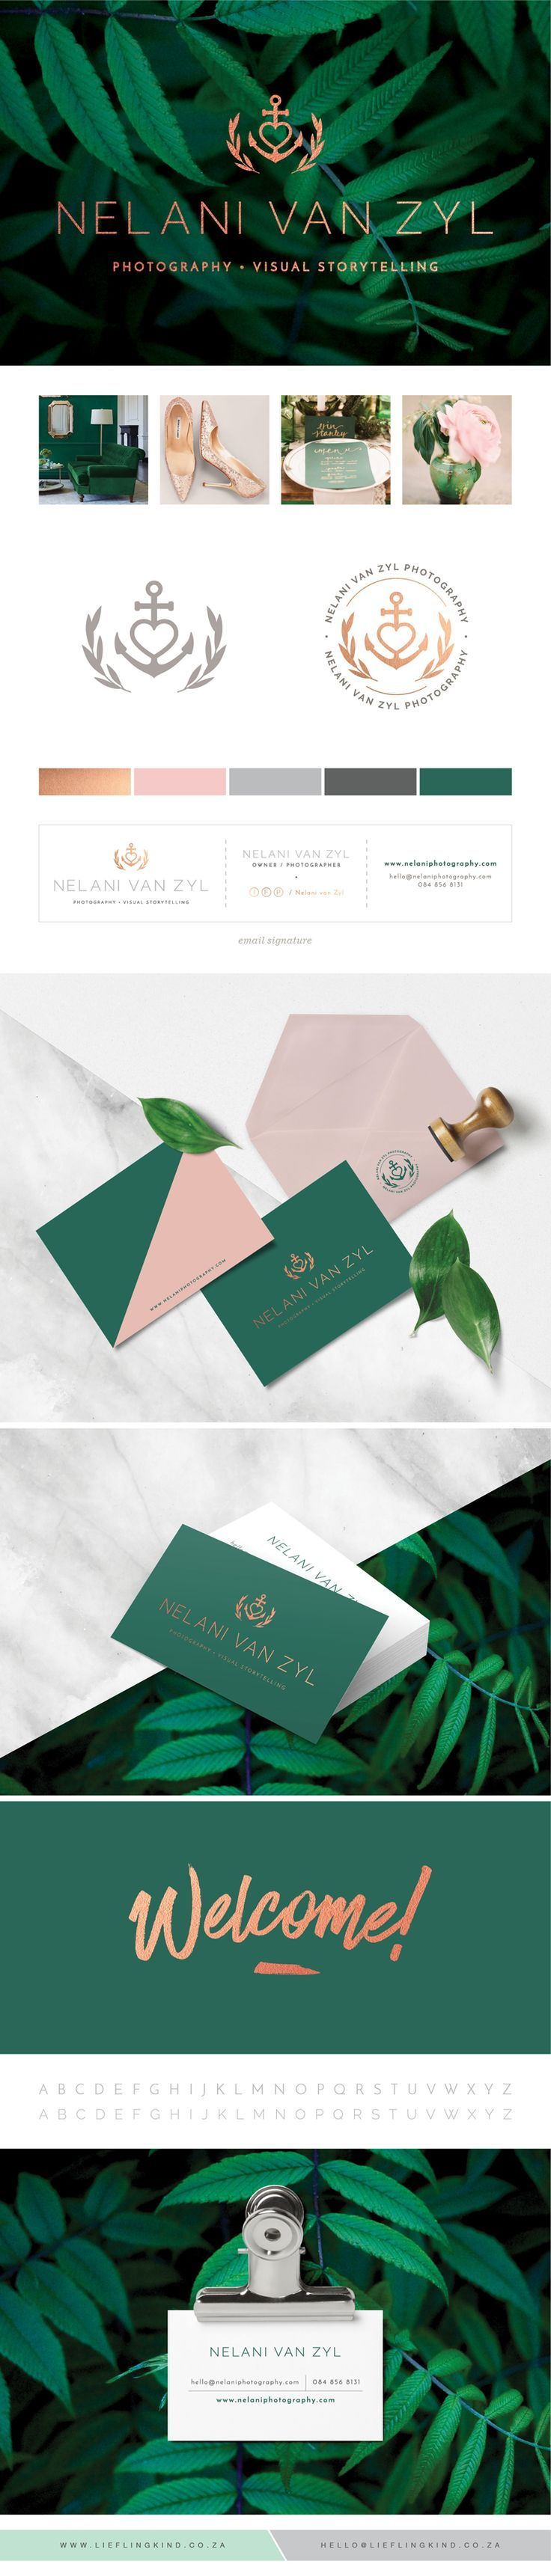 Professional, Sophisticated, Clean, Minimalist Branding for Nelani van Zyl Photography.  Emerald Green. Blush Pink. Rose Gold. Corporate Identity. Brand. Logo. Business Card. Thank you note. Anchor. Olive branch. Feminine. Icon. Nautical.. If you're a user experience professional, listen to The UX Blog Podcast on iTunes.